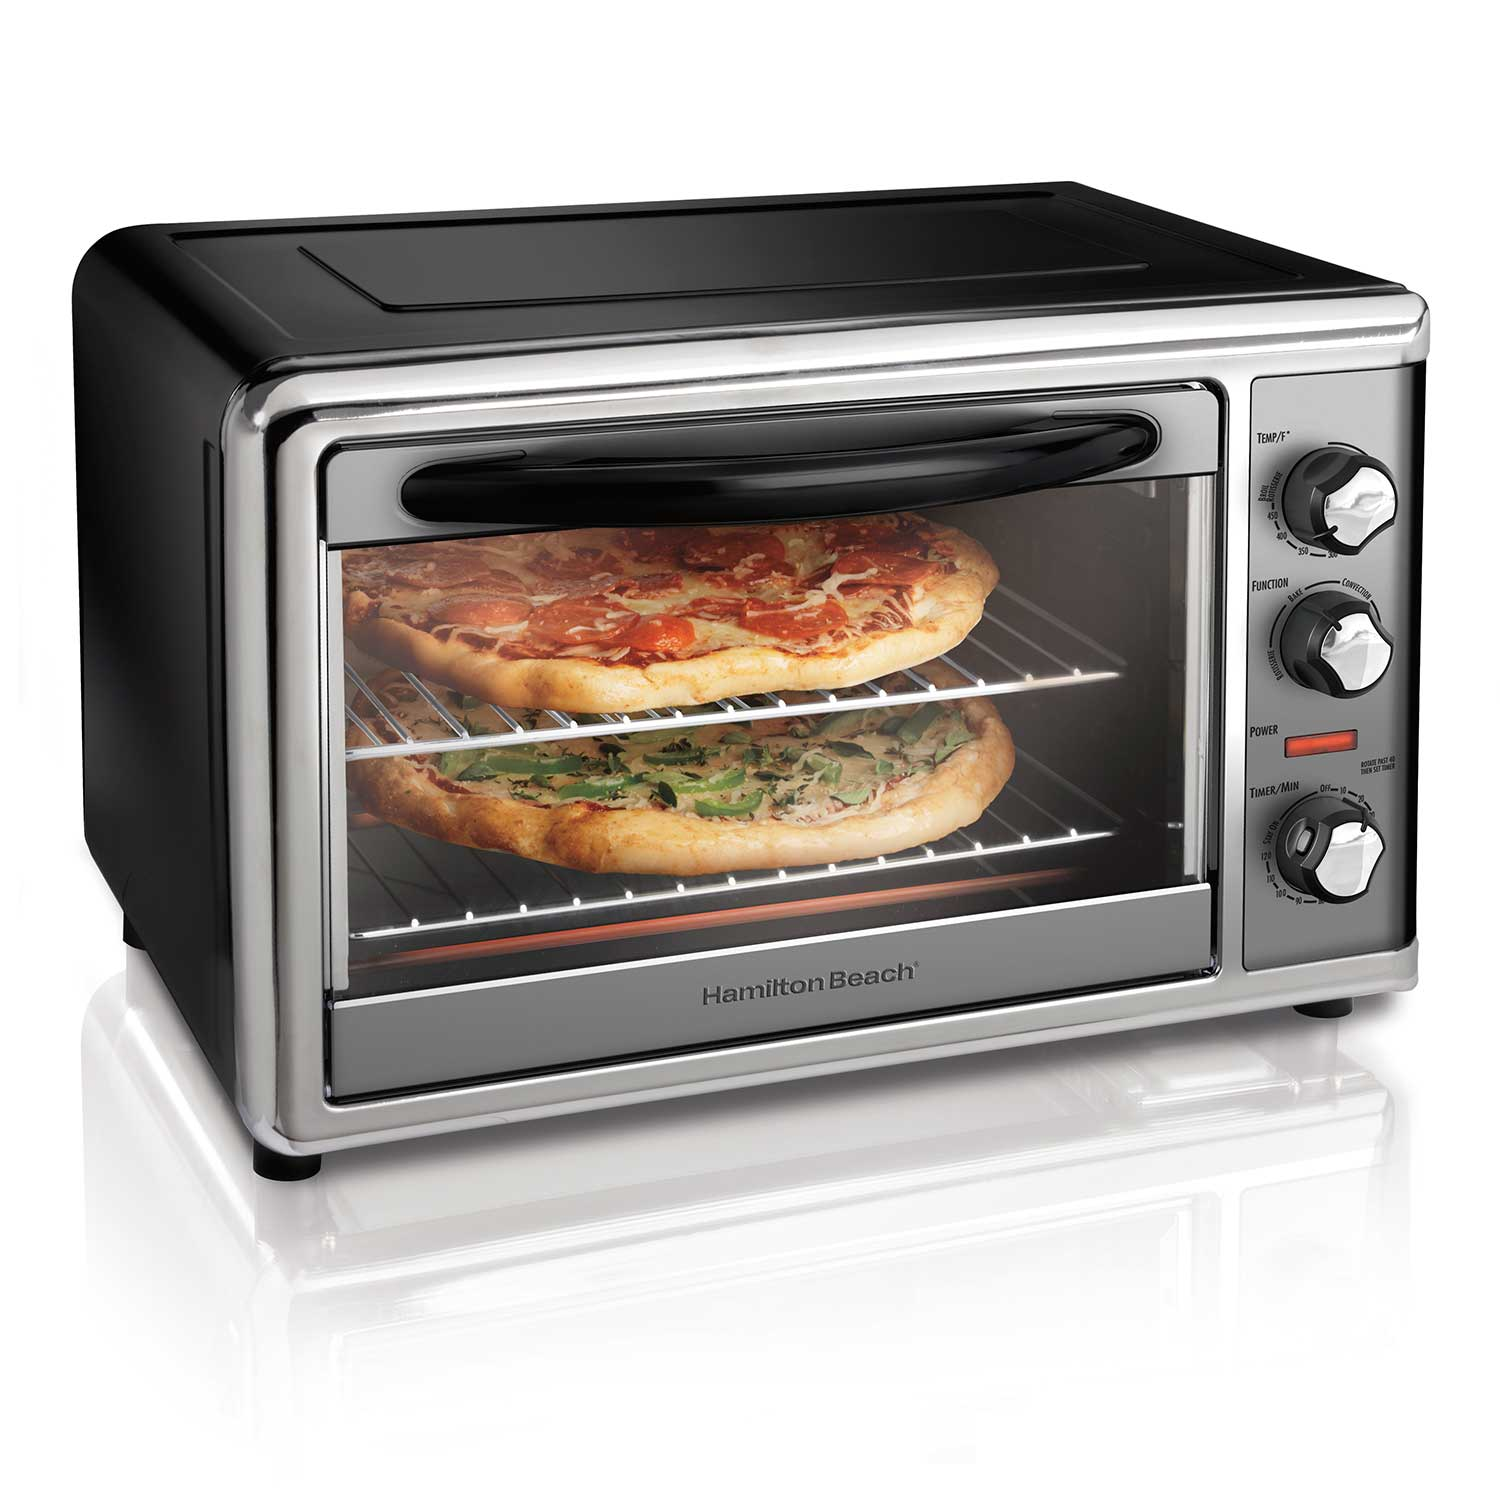 Countertop Oven with Convection and Rotisserie (Black) (31104D)